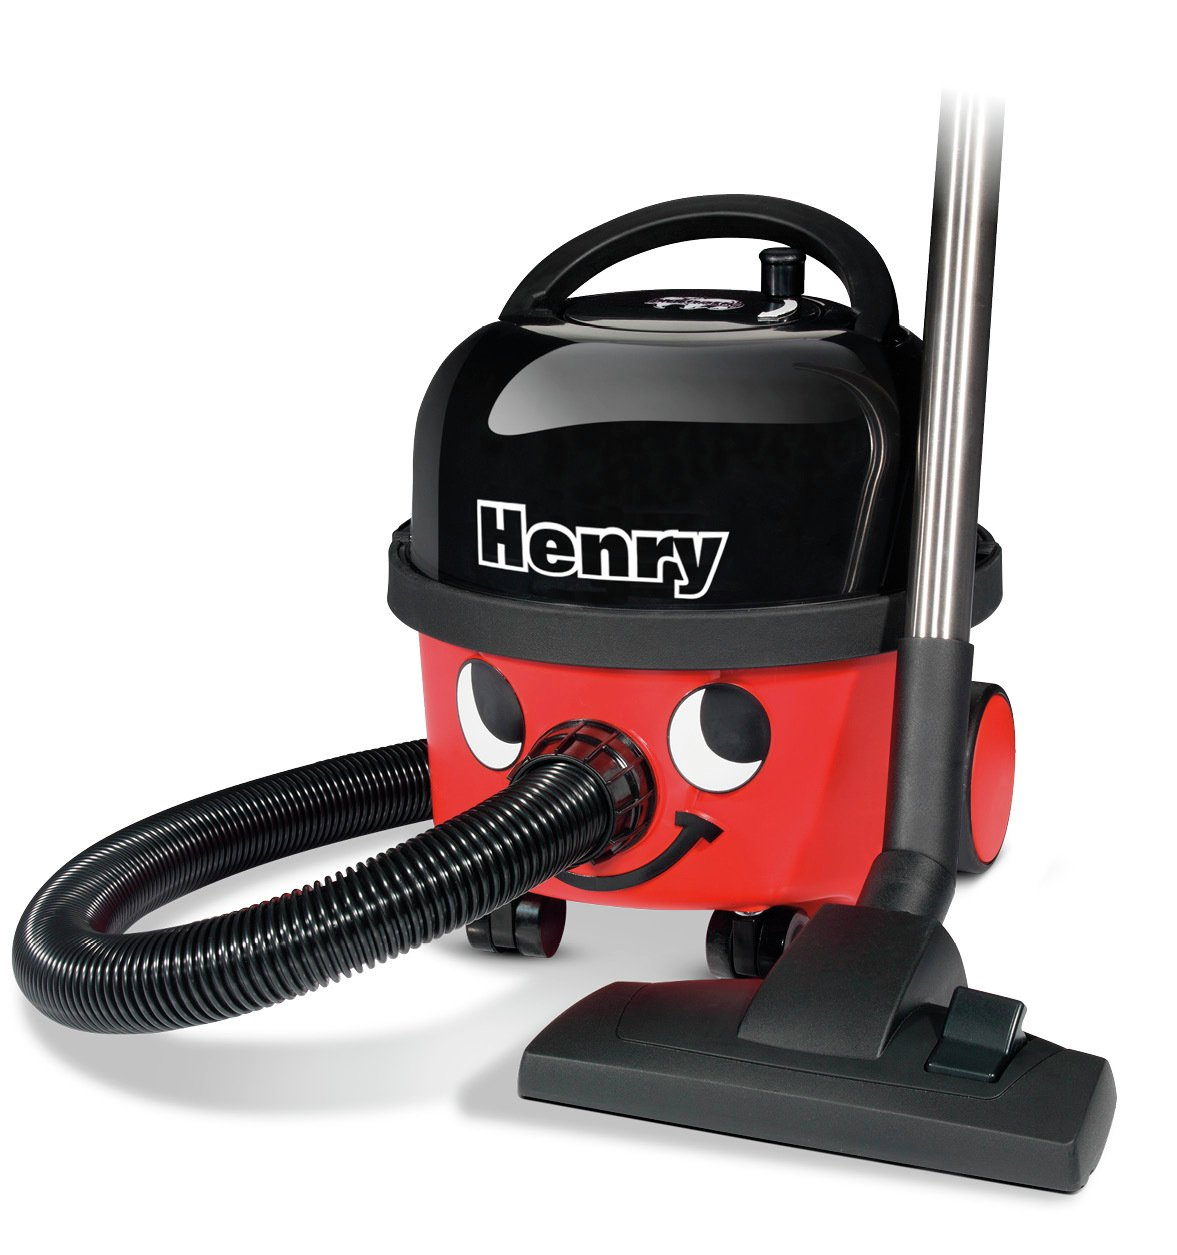 7 of the best vacuum cleaners 2019